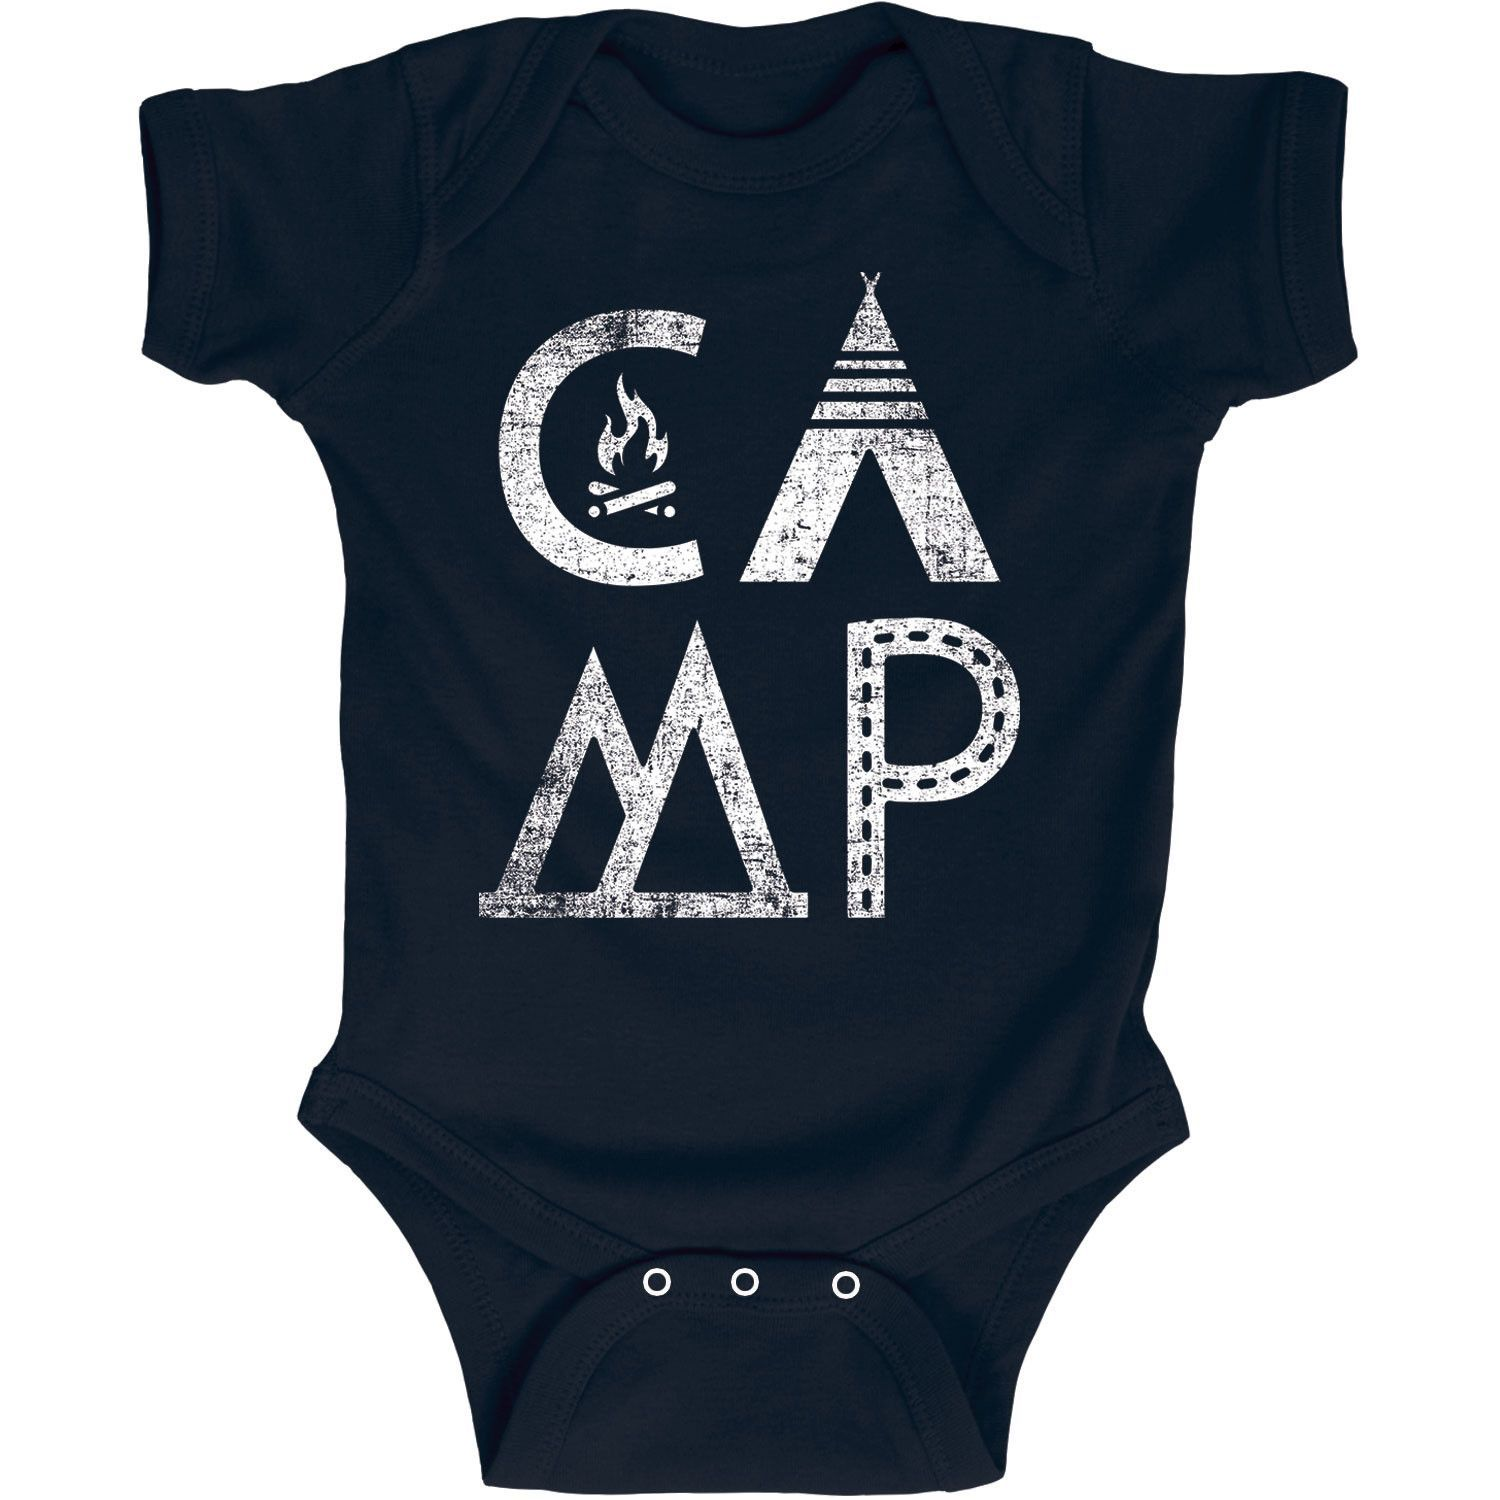 ab4a0a8ce Here's a cool camping idea. Camping shirts for the kids on your next trip! CAMP  Camping Logo Infant One Piece Baby Onesie. #camping #campingshirts